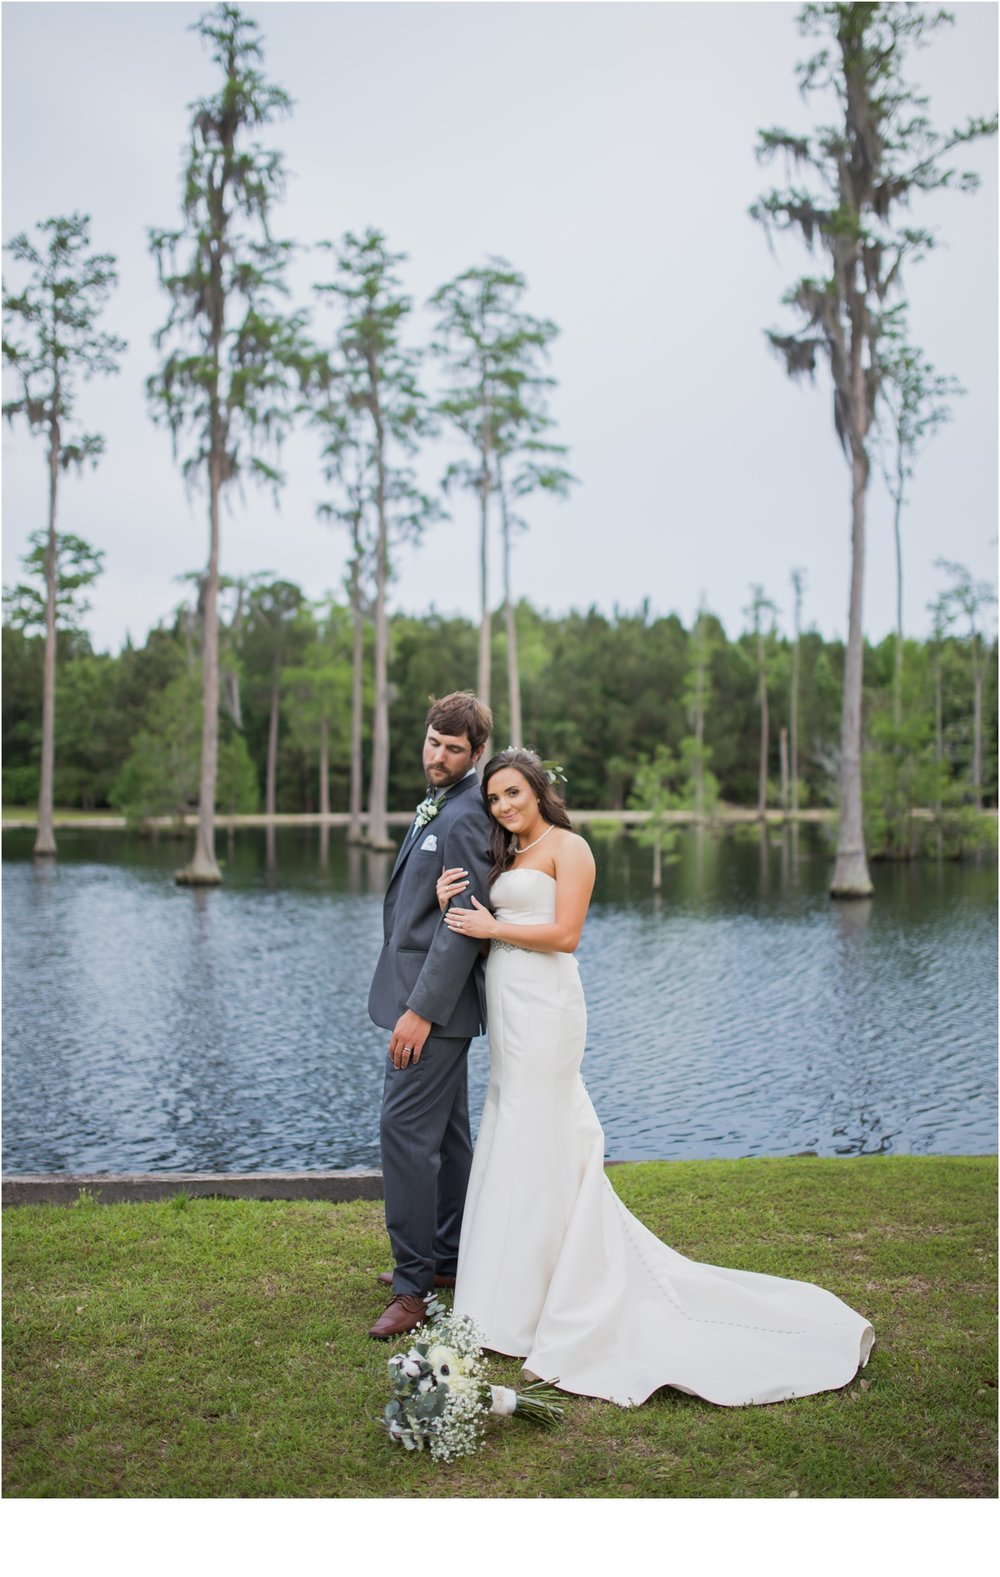 Rainey_Gregg_Photography_St._Simons_Island_Georgia_California_Wedding_Portrait_Photography_1012.jpg